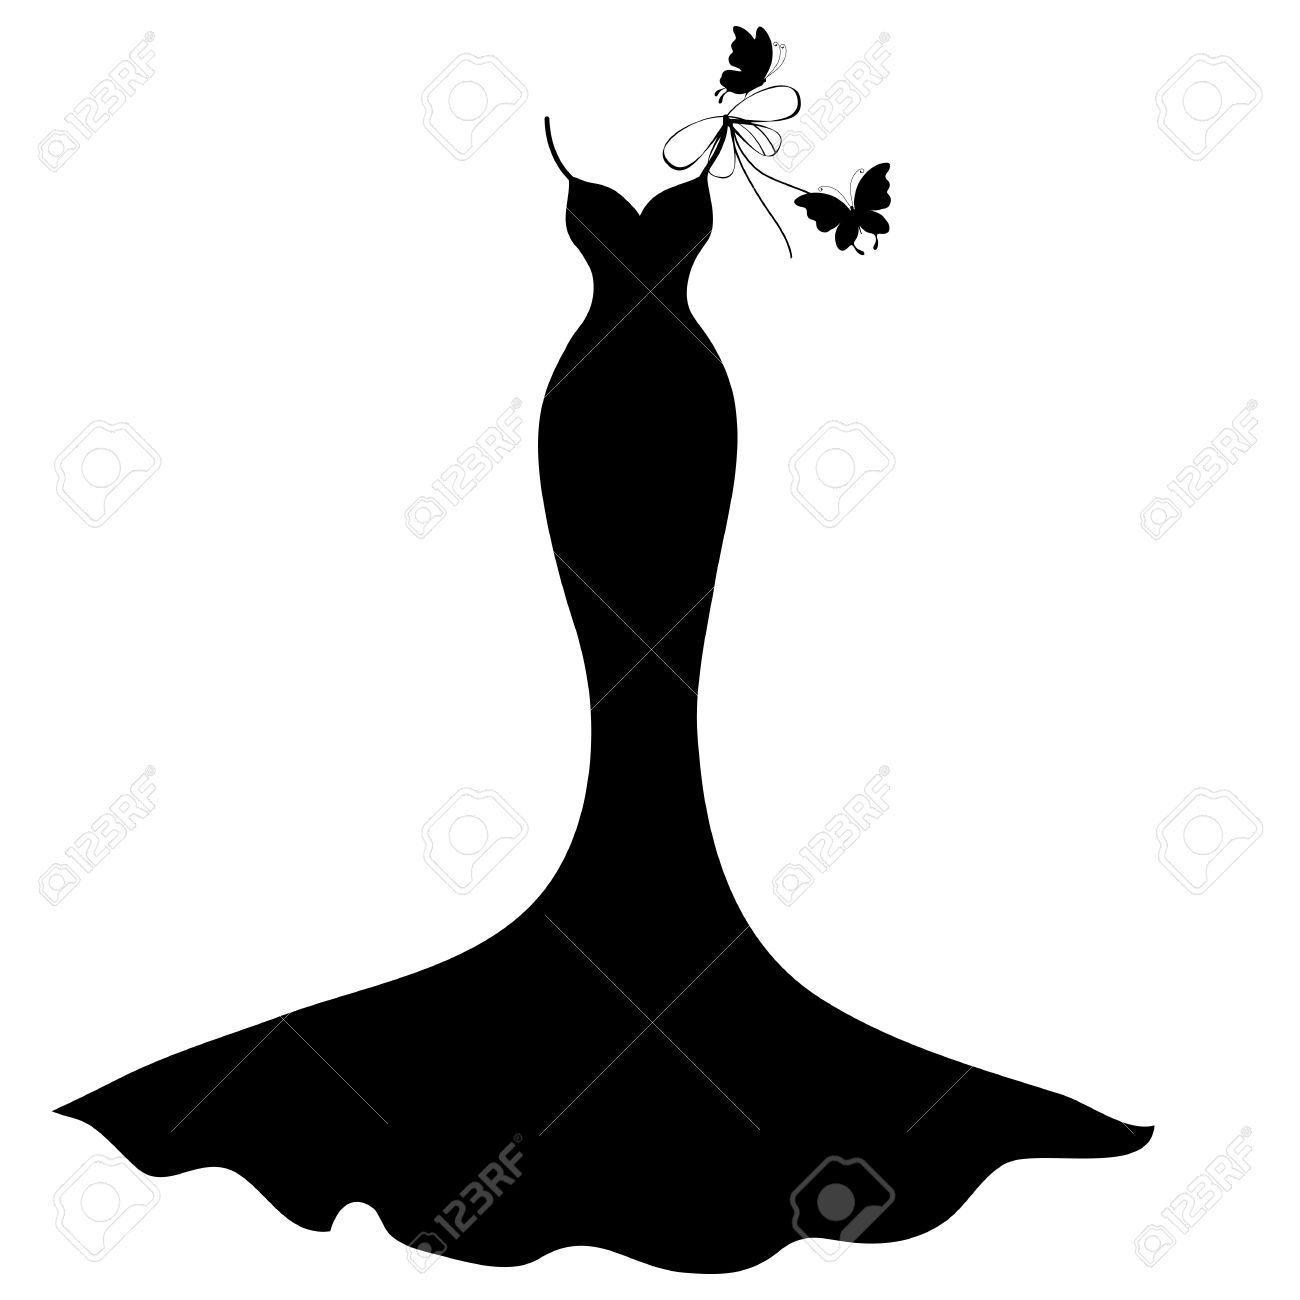 Prom dress images in black and white clipart picture transparent stock Prom Dress Clipart | Free download best Prom Dress Clipart ... picture transparent stock